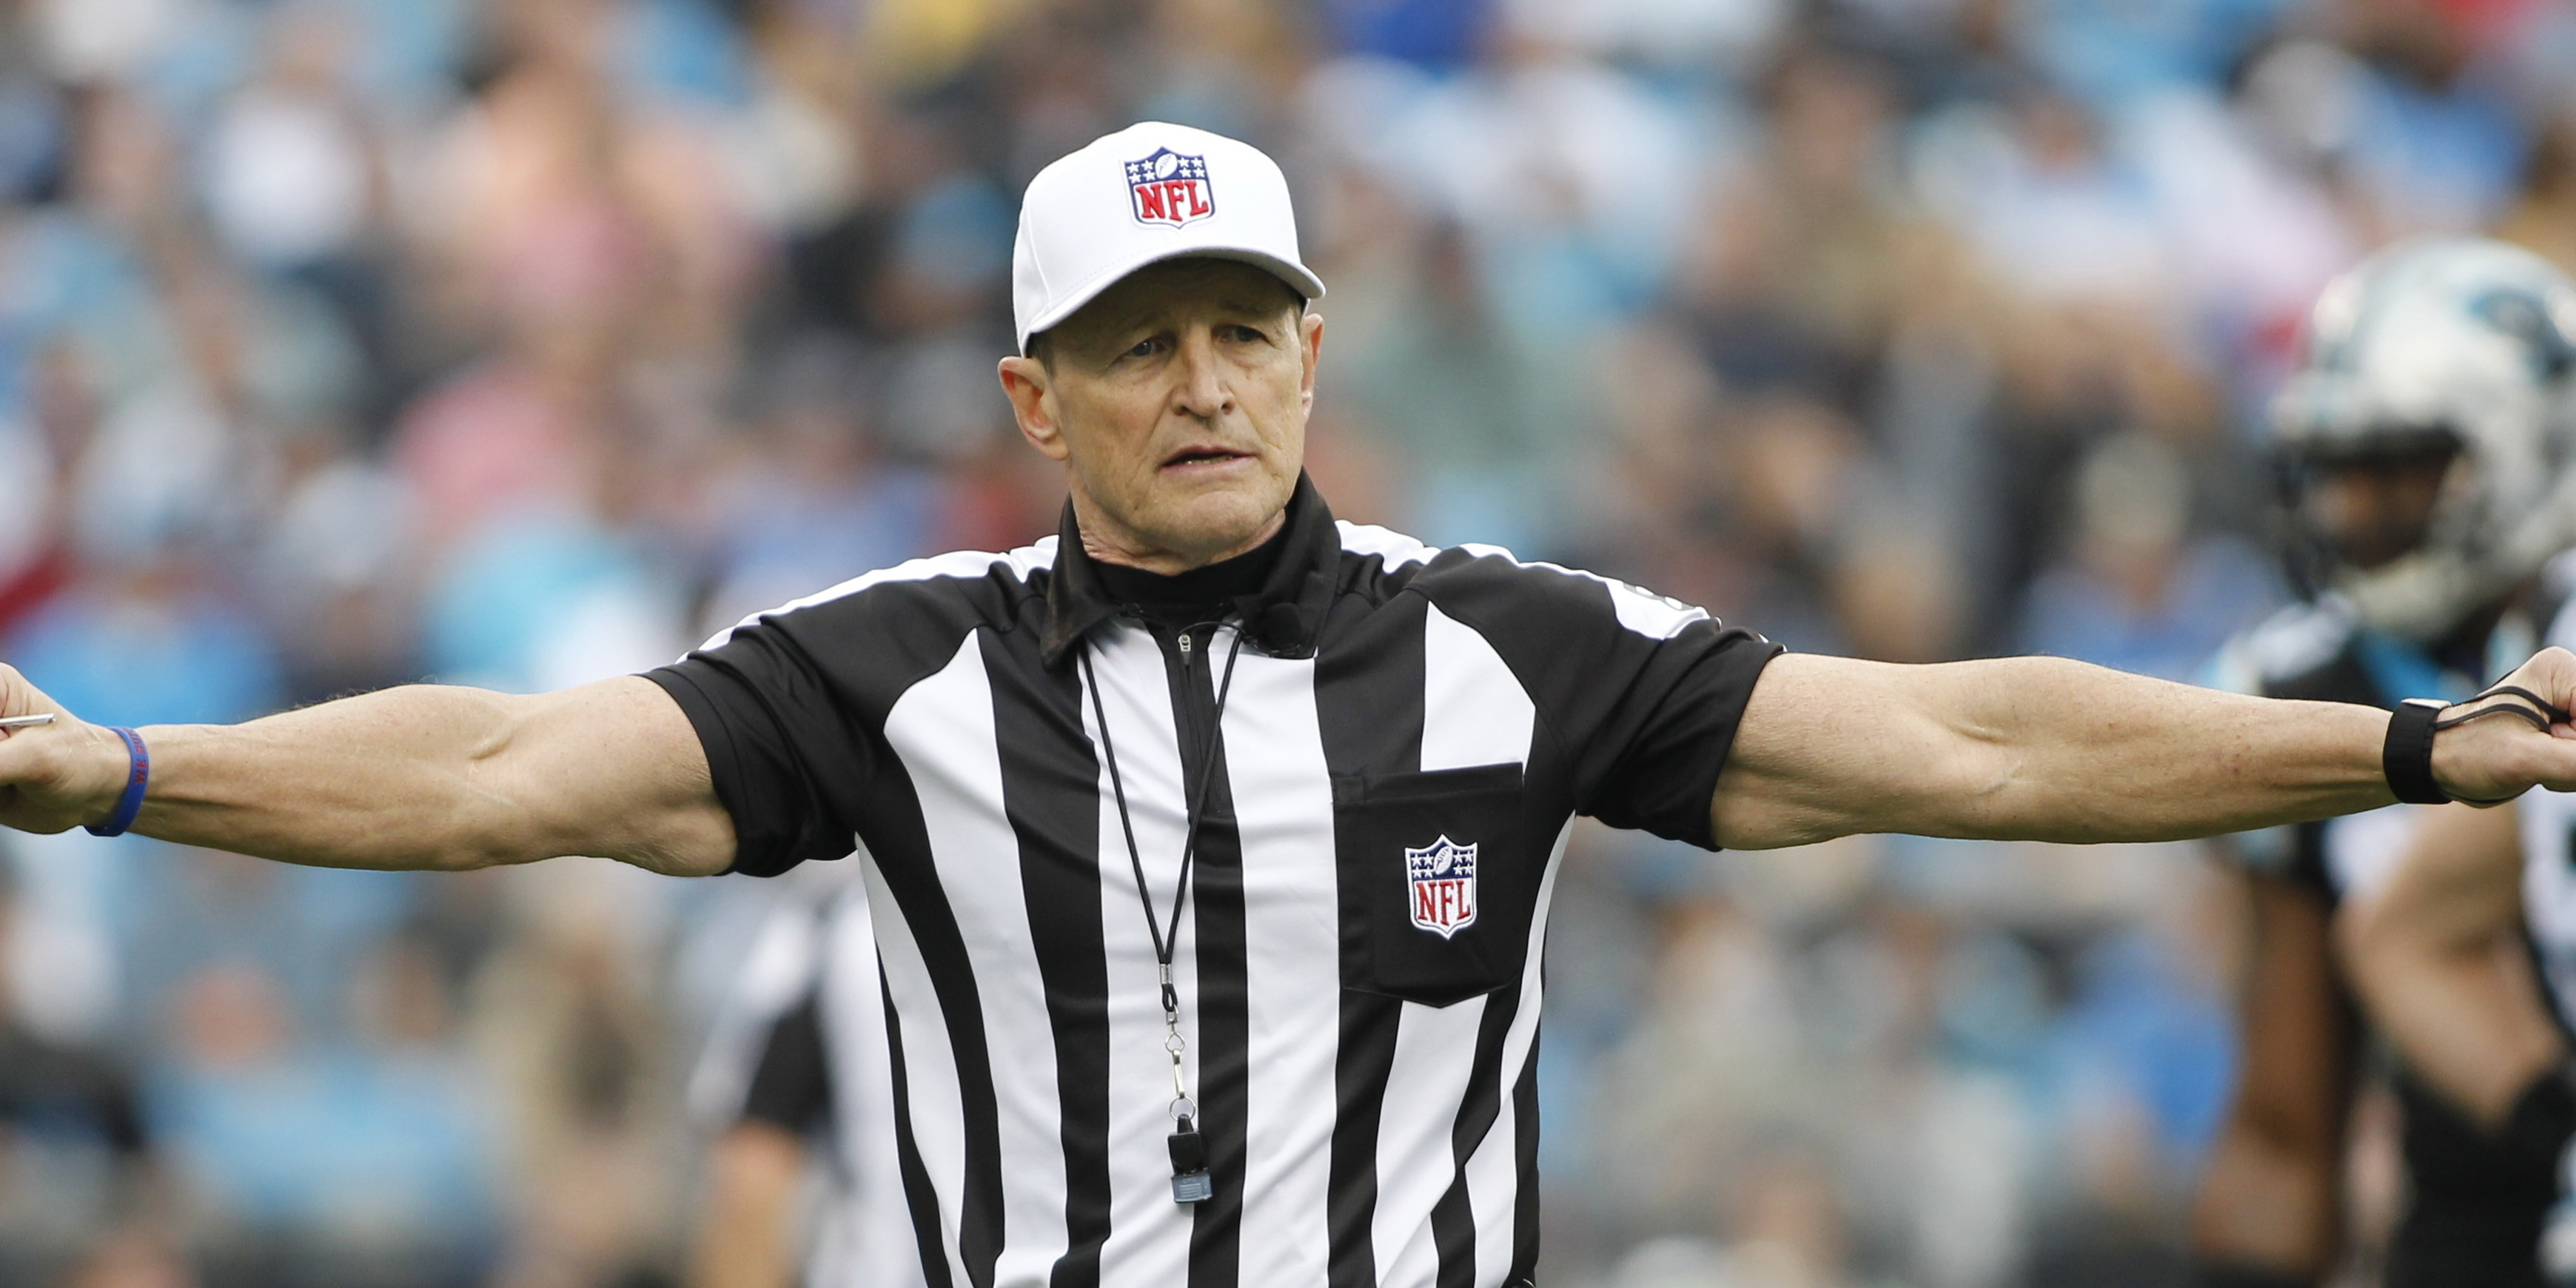 Referee Ed Hochuli makes a call during the first half of an NFL football game between the Carolina Panthers and the Atlanta Falcons in Charlotte, N.C., Sunday, Dec. 9, 2012. (AP Photo/Bob Leverone)